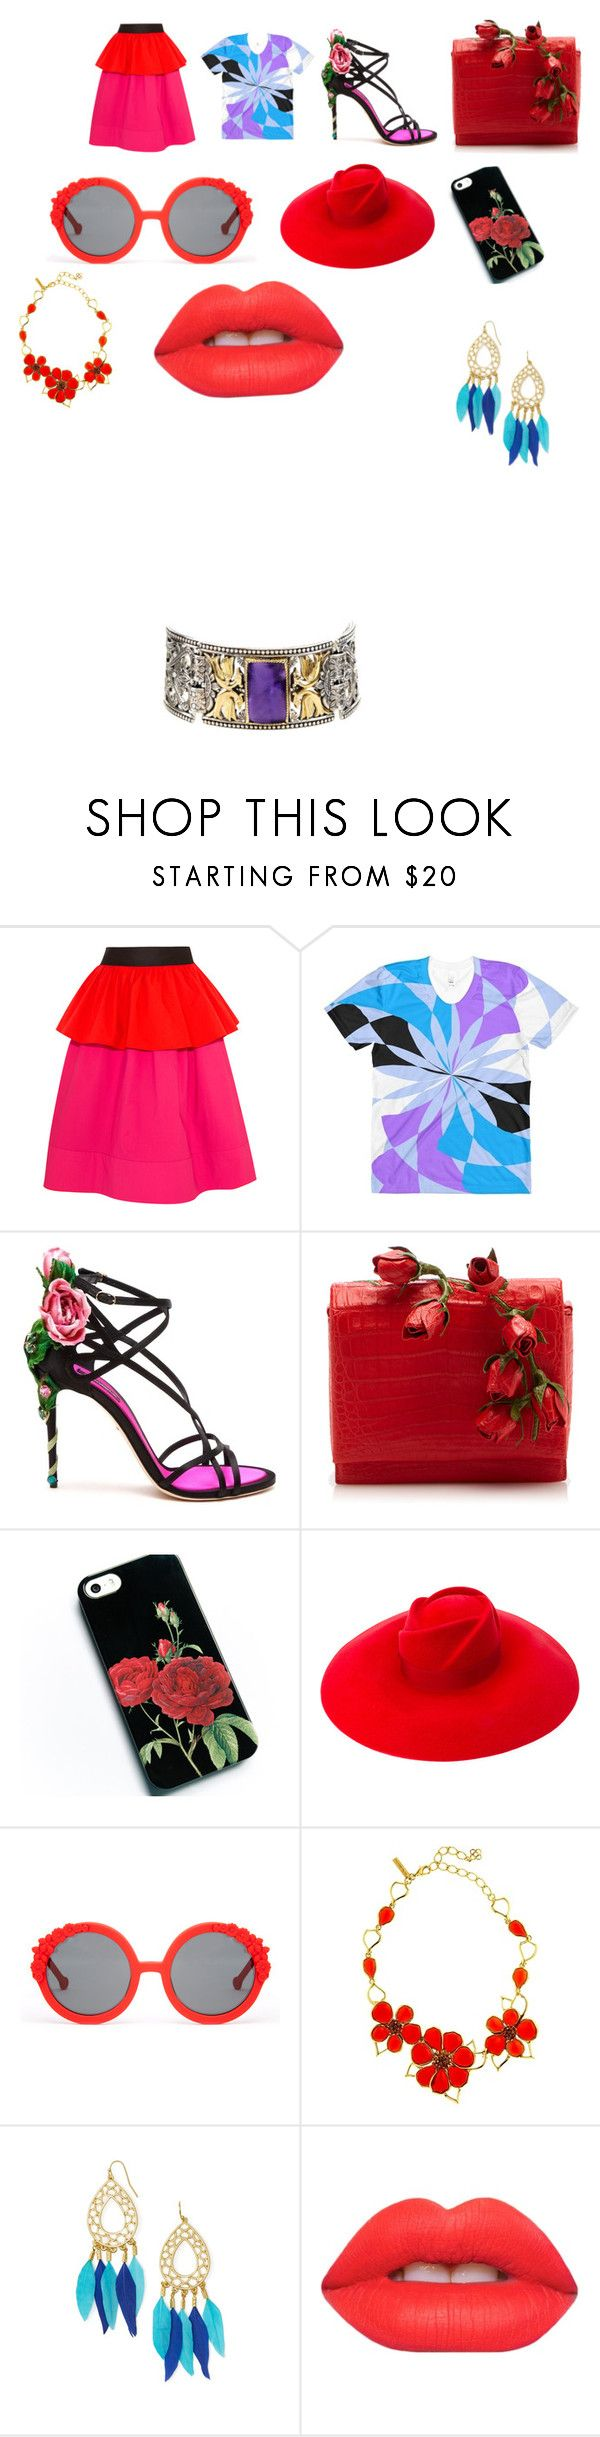 """""""colors"""" by chianna-rodgers ❤ liked on Polyvore featuring Isa Arfen, Dolce&Gabbana, Nancy Gonzalez, Gucci, Preen, Oscar de la Renta, BaubleBar, Lime Crime and Konstantino"""